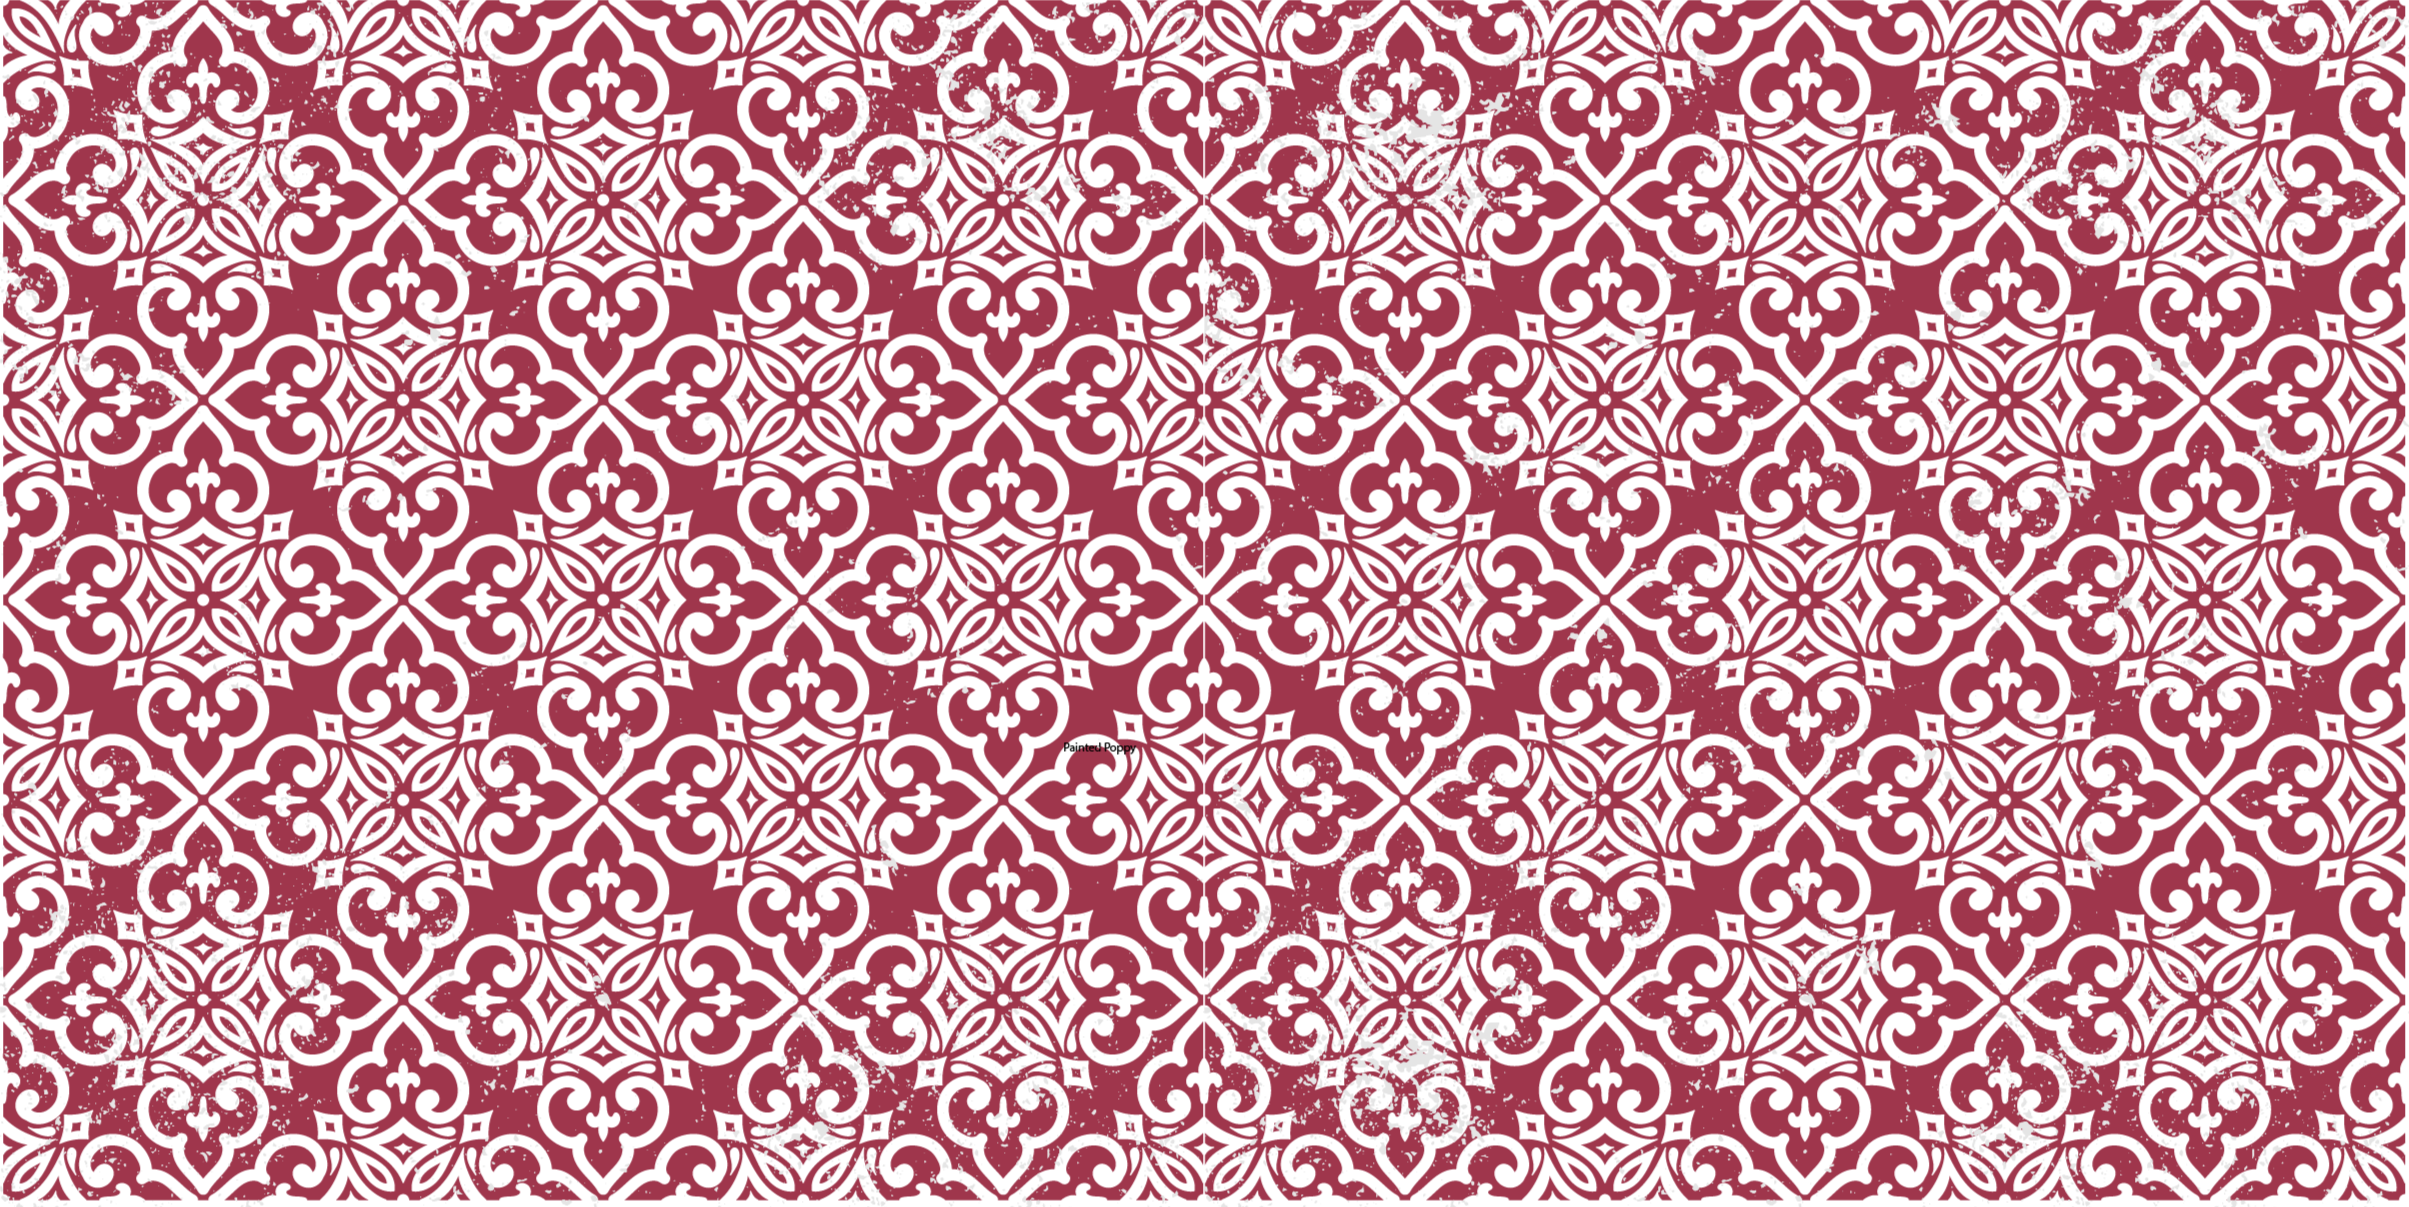 TenStickers. Moroccan Red  retro rug. You can place this red colour Moroccan pattern vinyl carper on any floor space in your home. It is suitable for hallways, kitchen, dinning , etc.